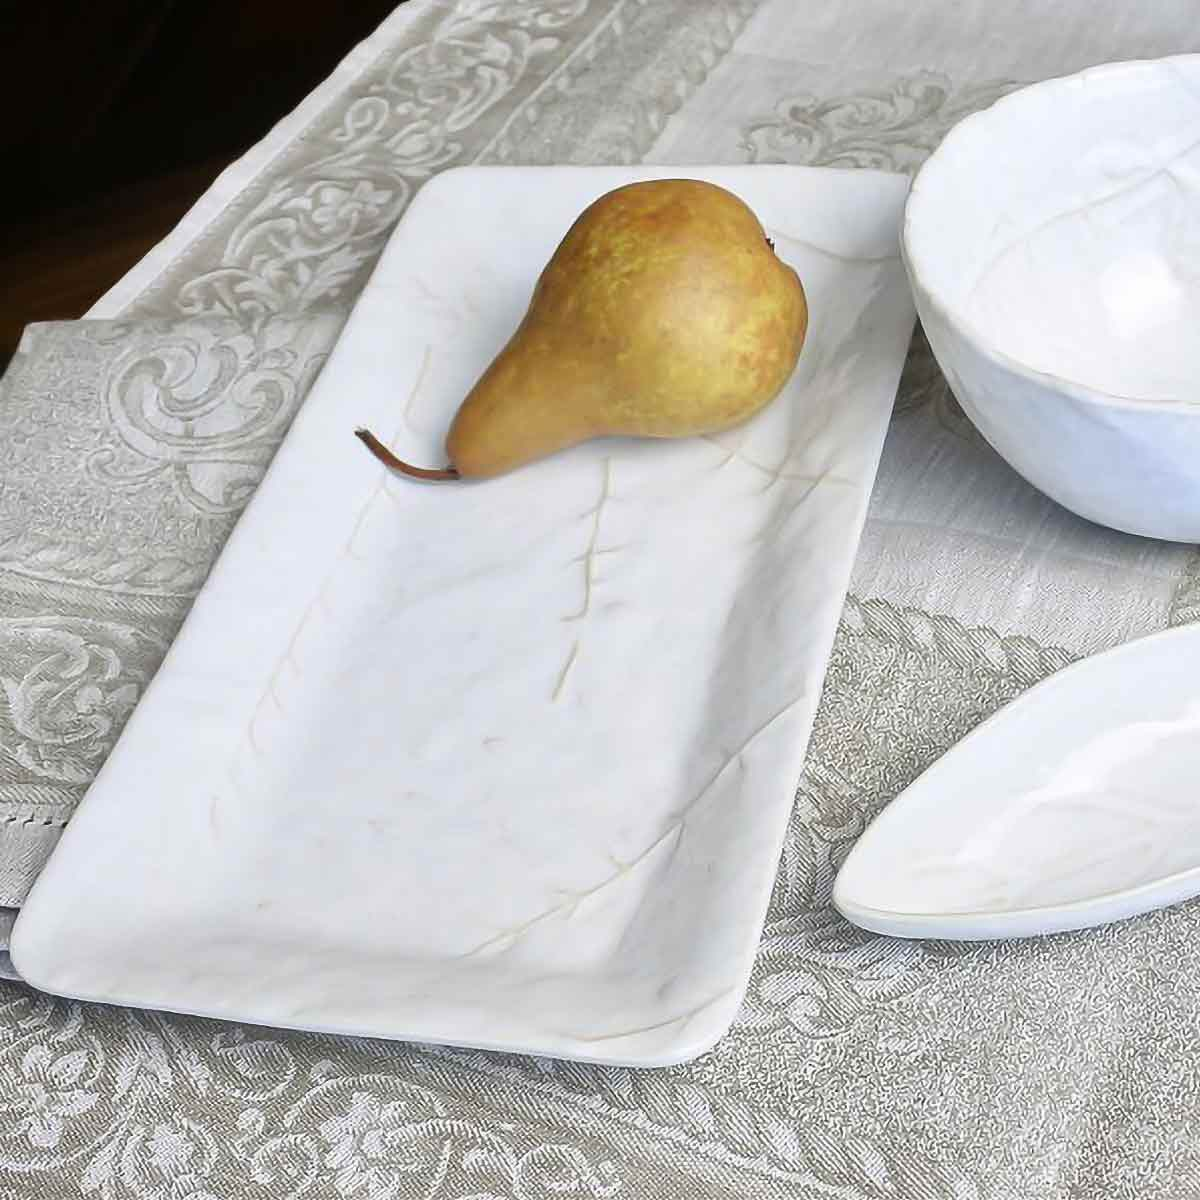 Didonato Floral Linen Table Runner shown with pear on white platter.